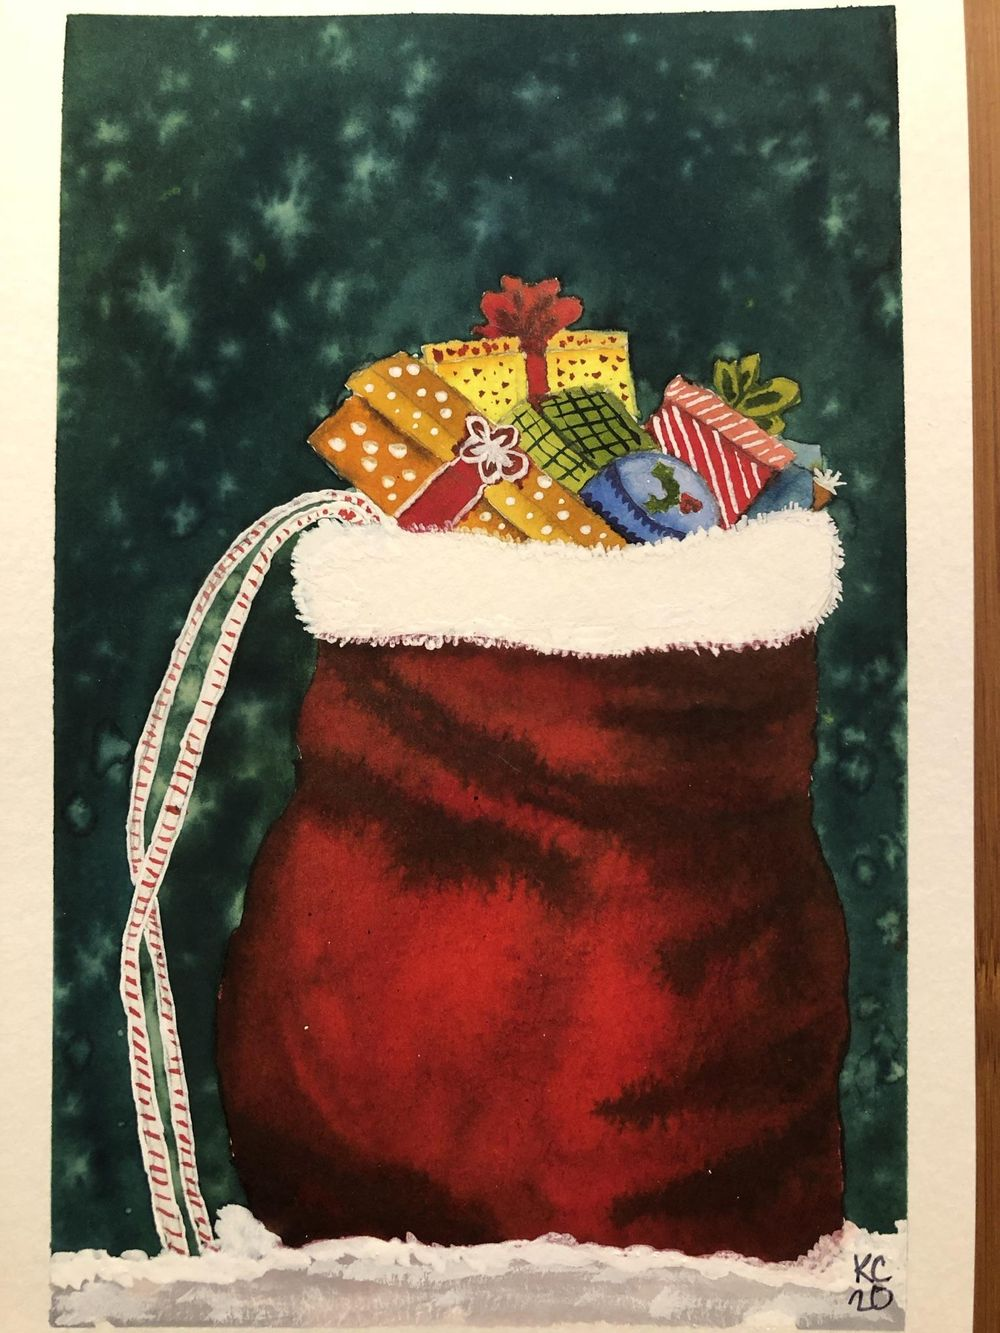 Countdown to Christmas - image 12 - student project